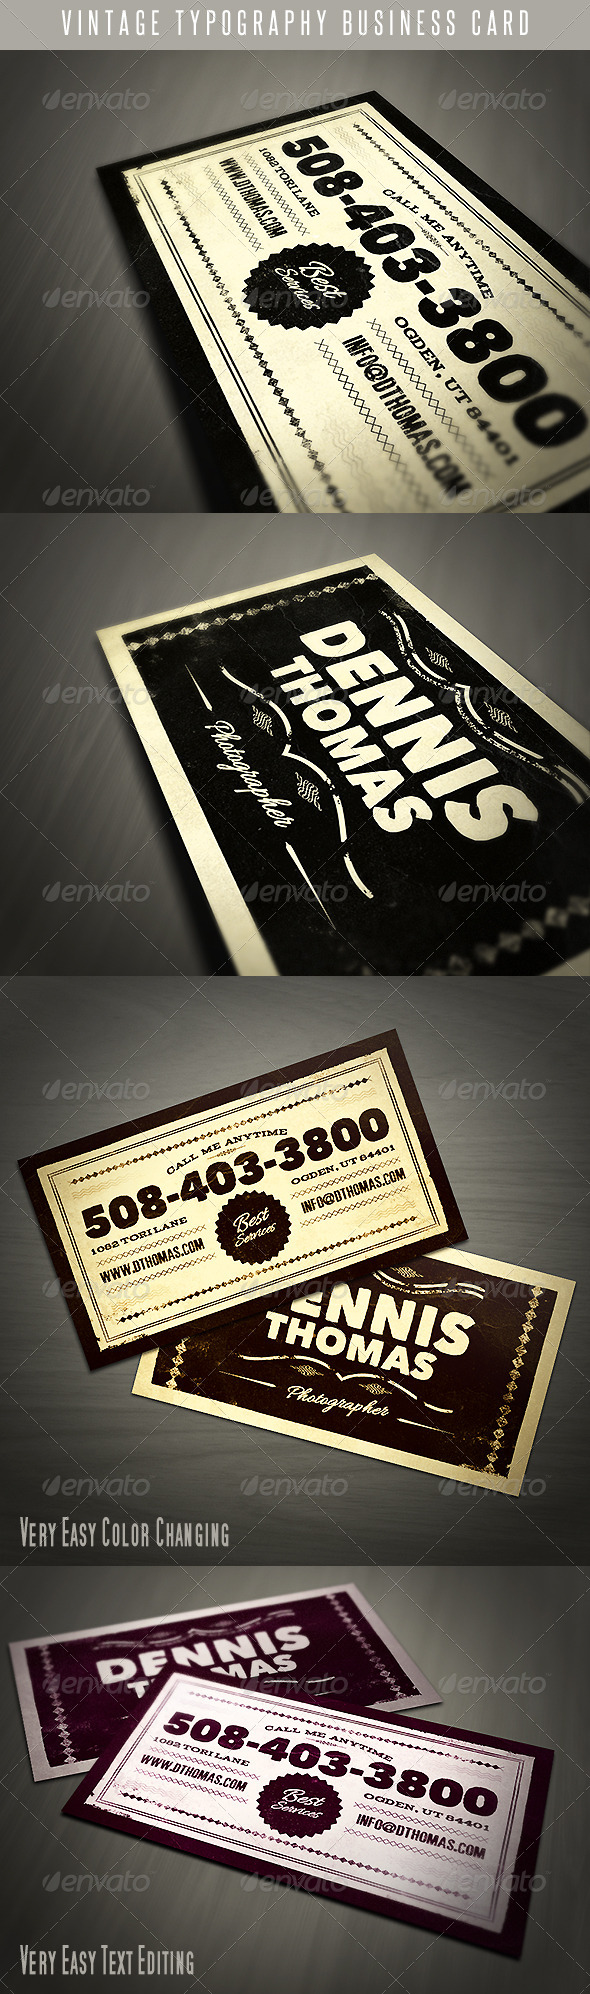 GraphicRiver Vintage Typography Business Card 4640805